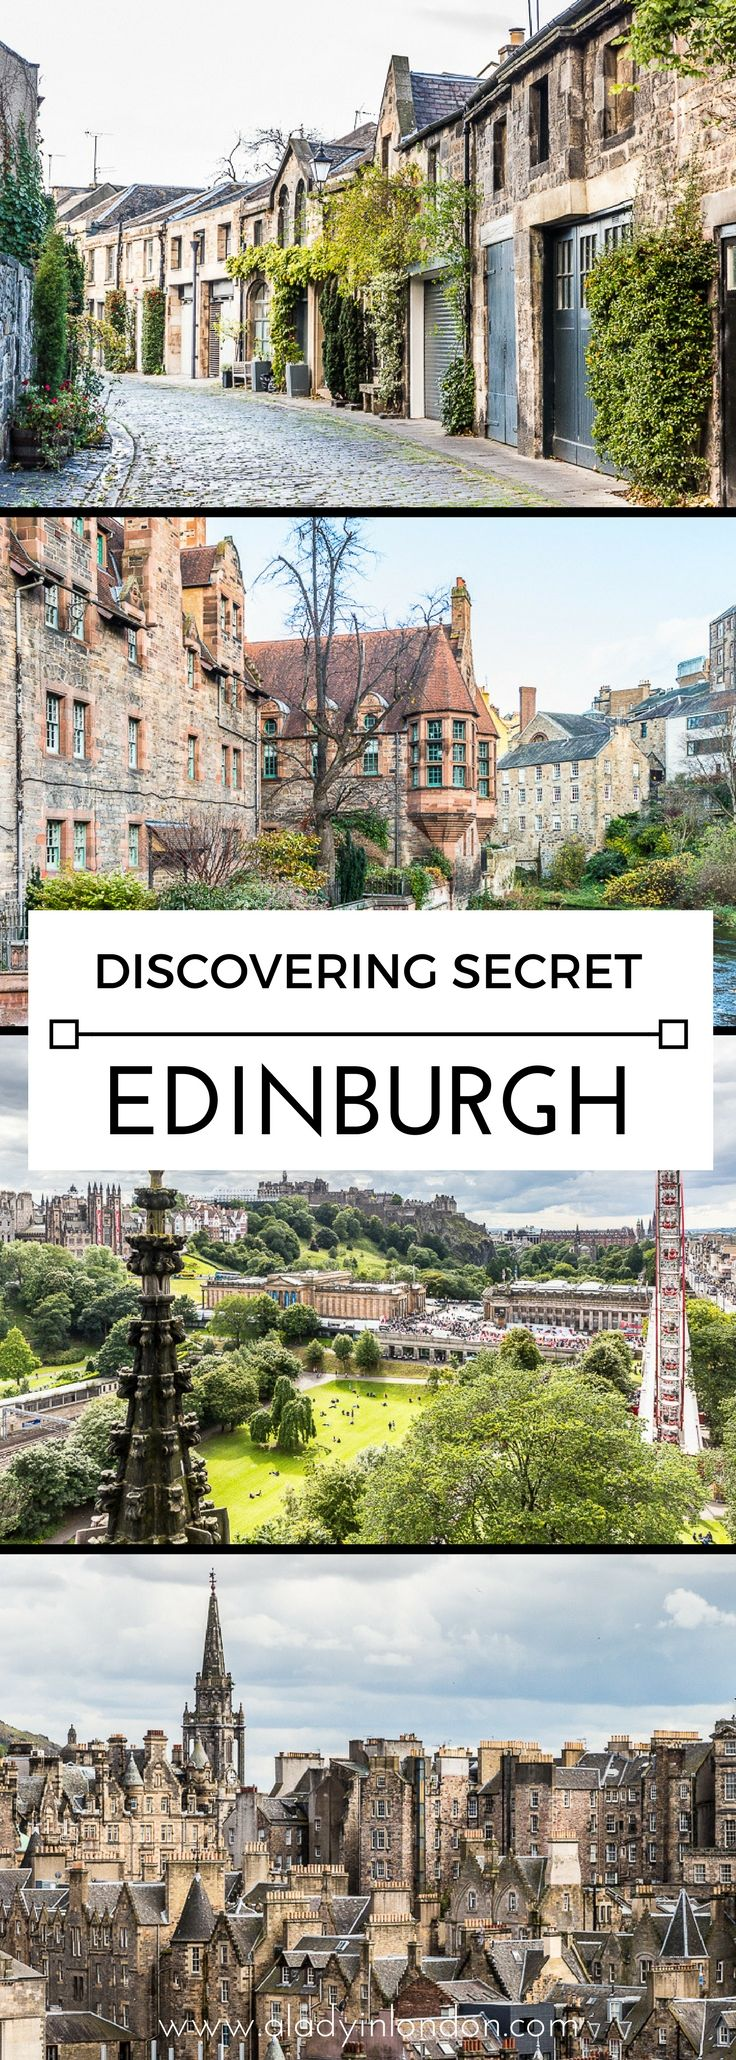 Secret Edinburgh – Discover 5 of the City's Under-the-Radar Gems